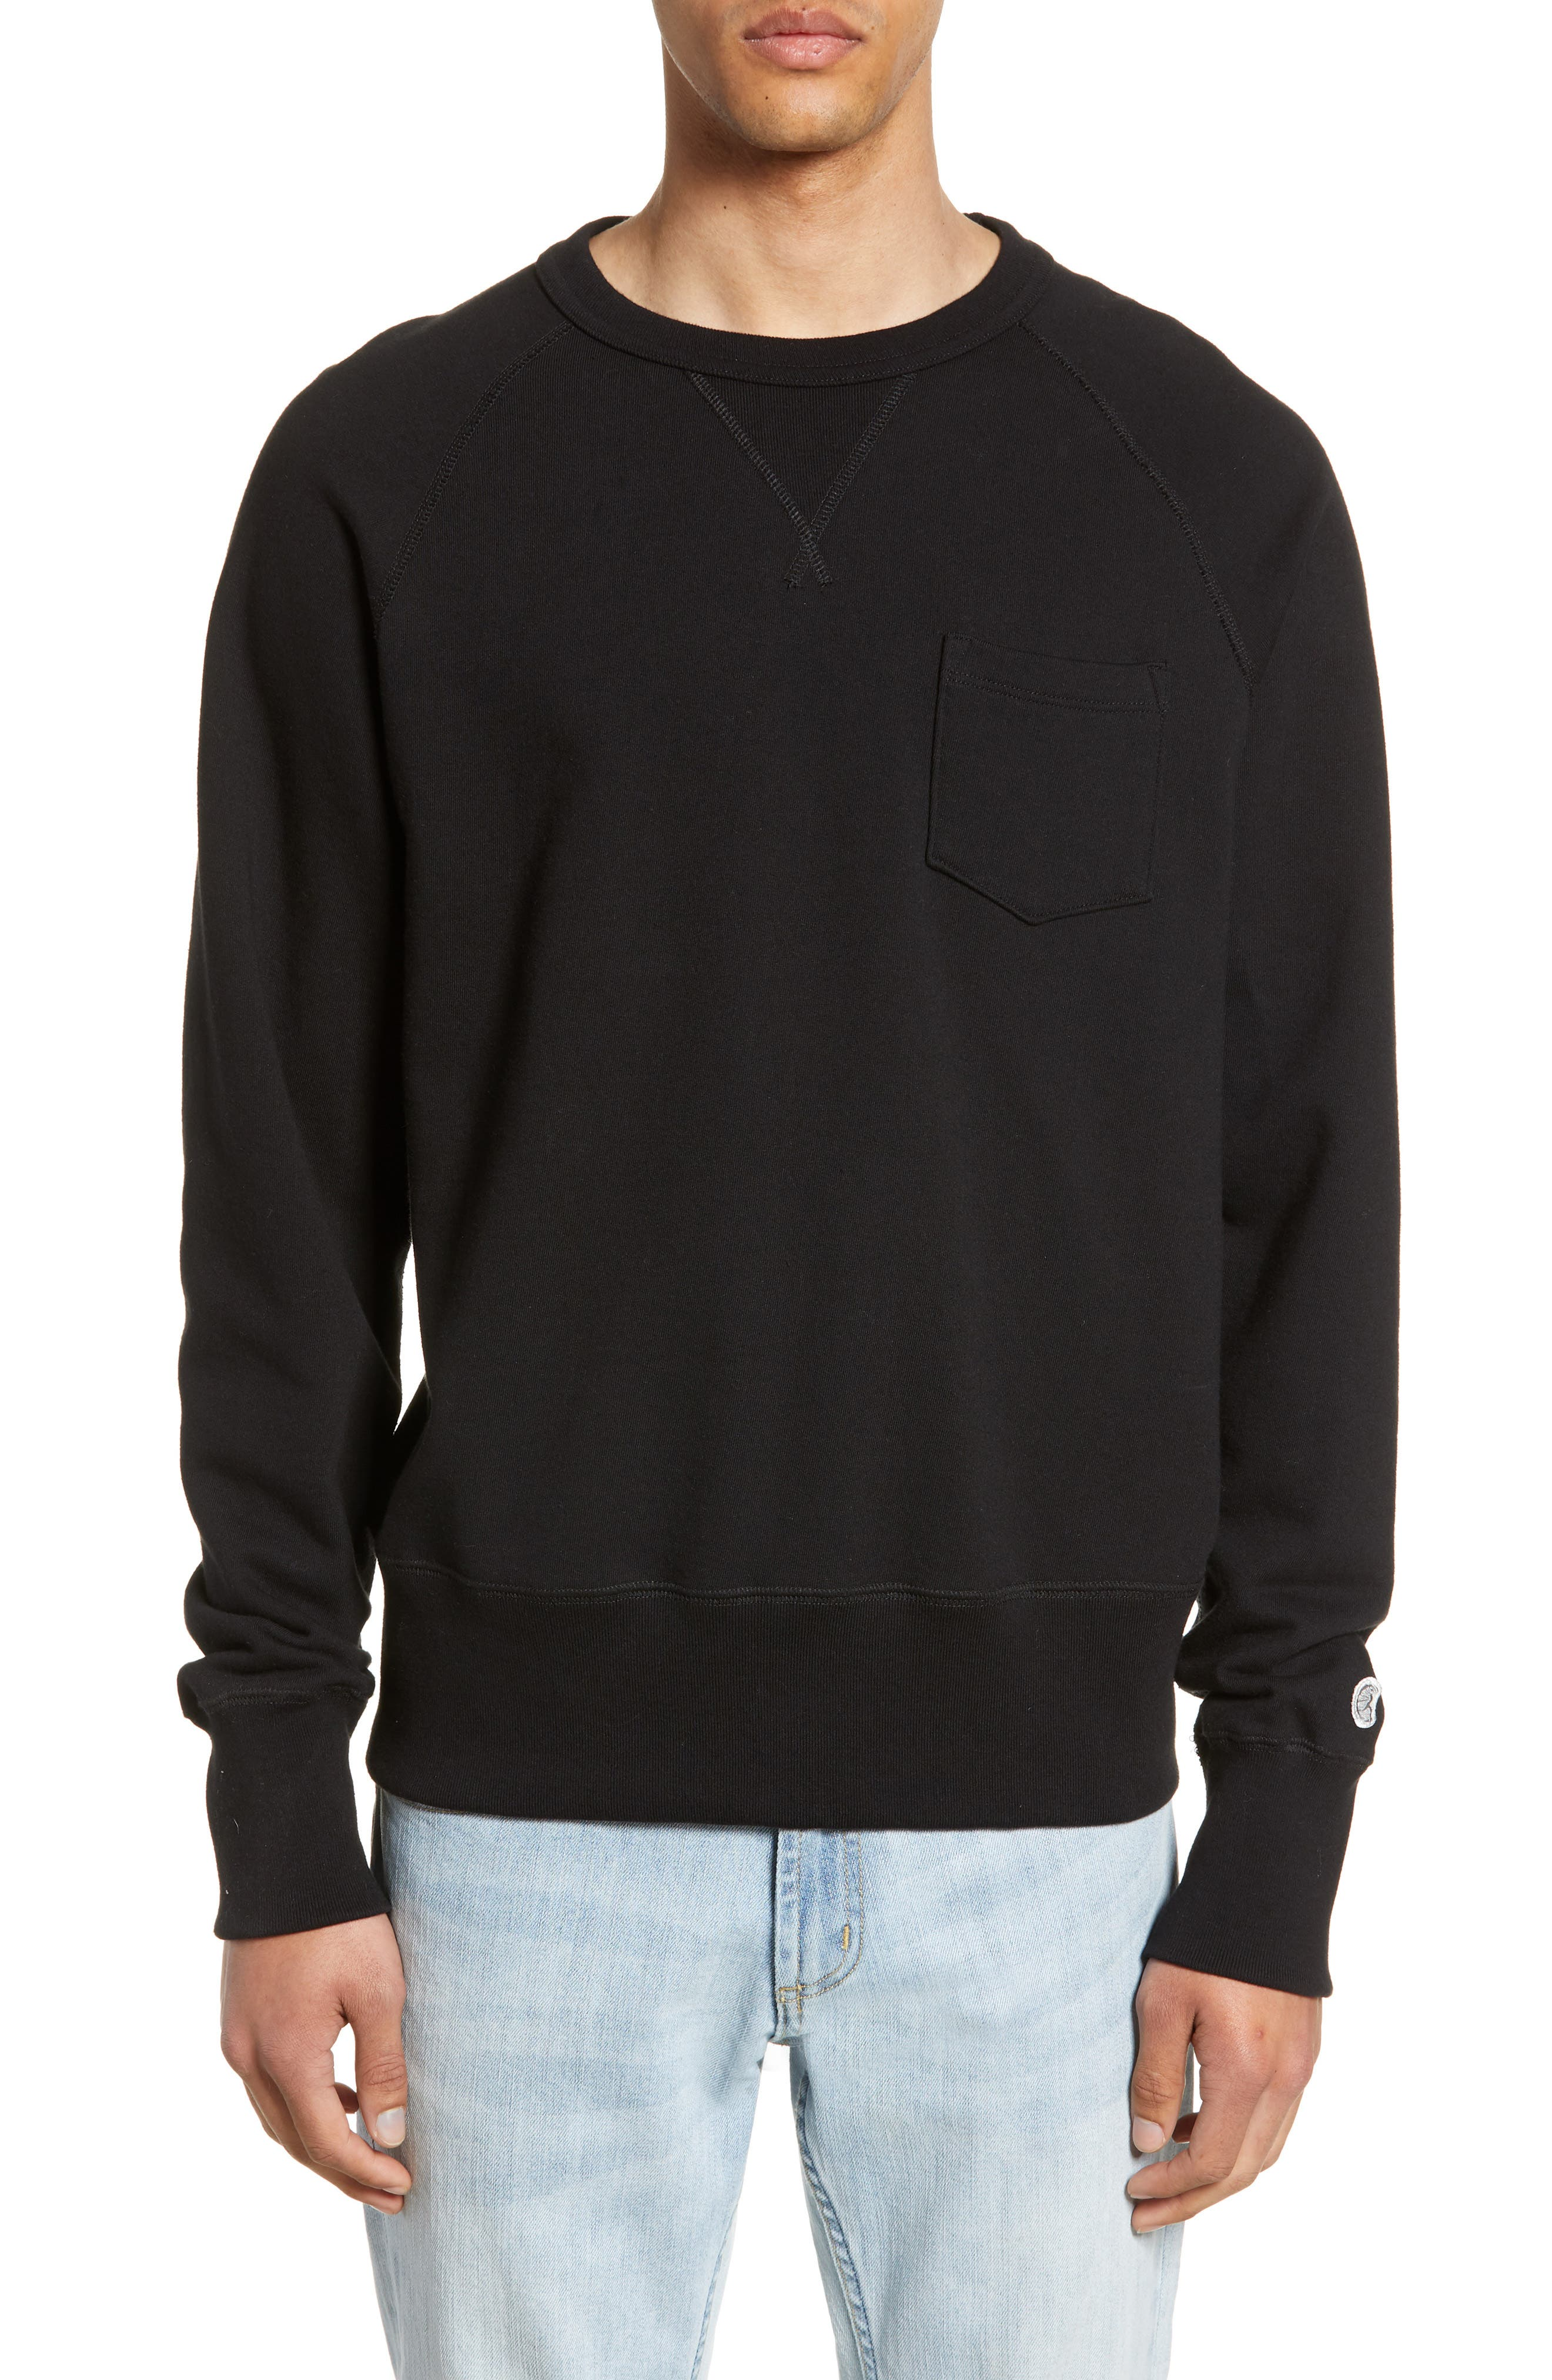 TODD SNYDER + CHAMPION, Todd Snyder Classic Pocket Sweatshirt, Main thumbnail 1, color, BLACK